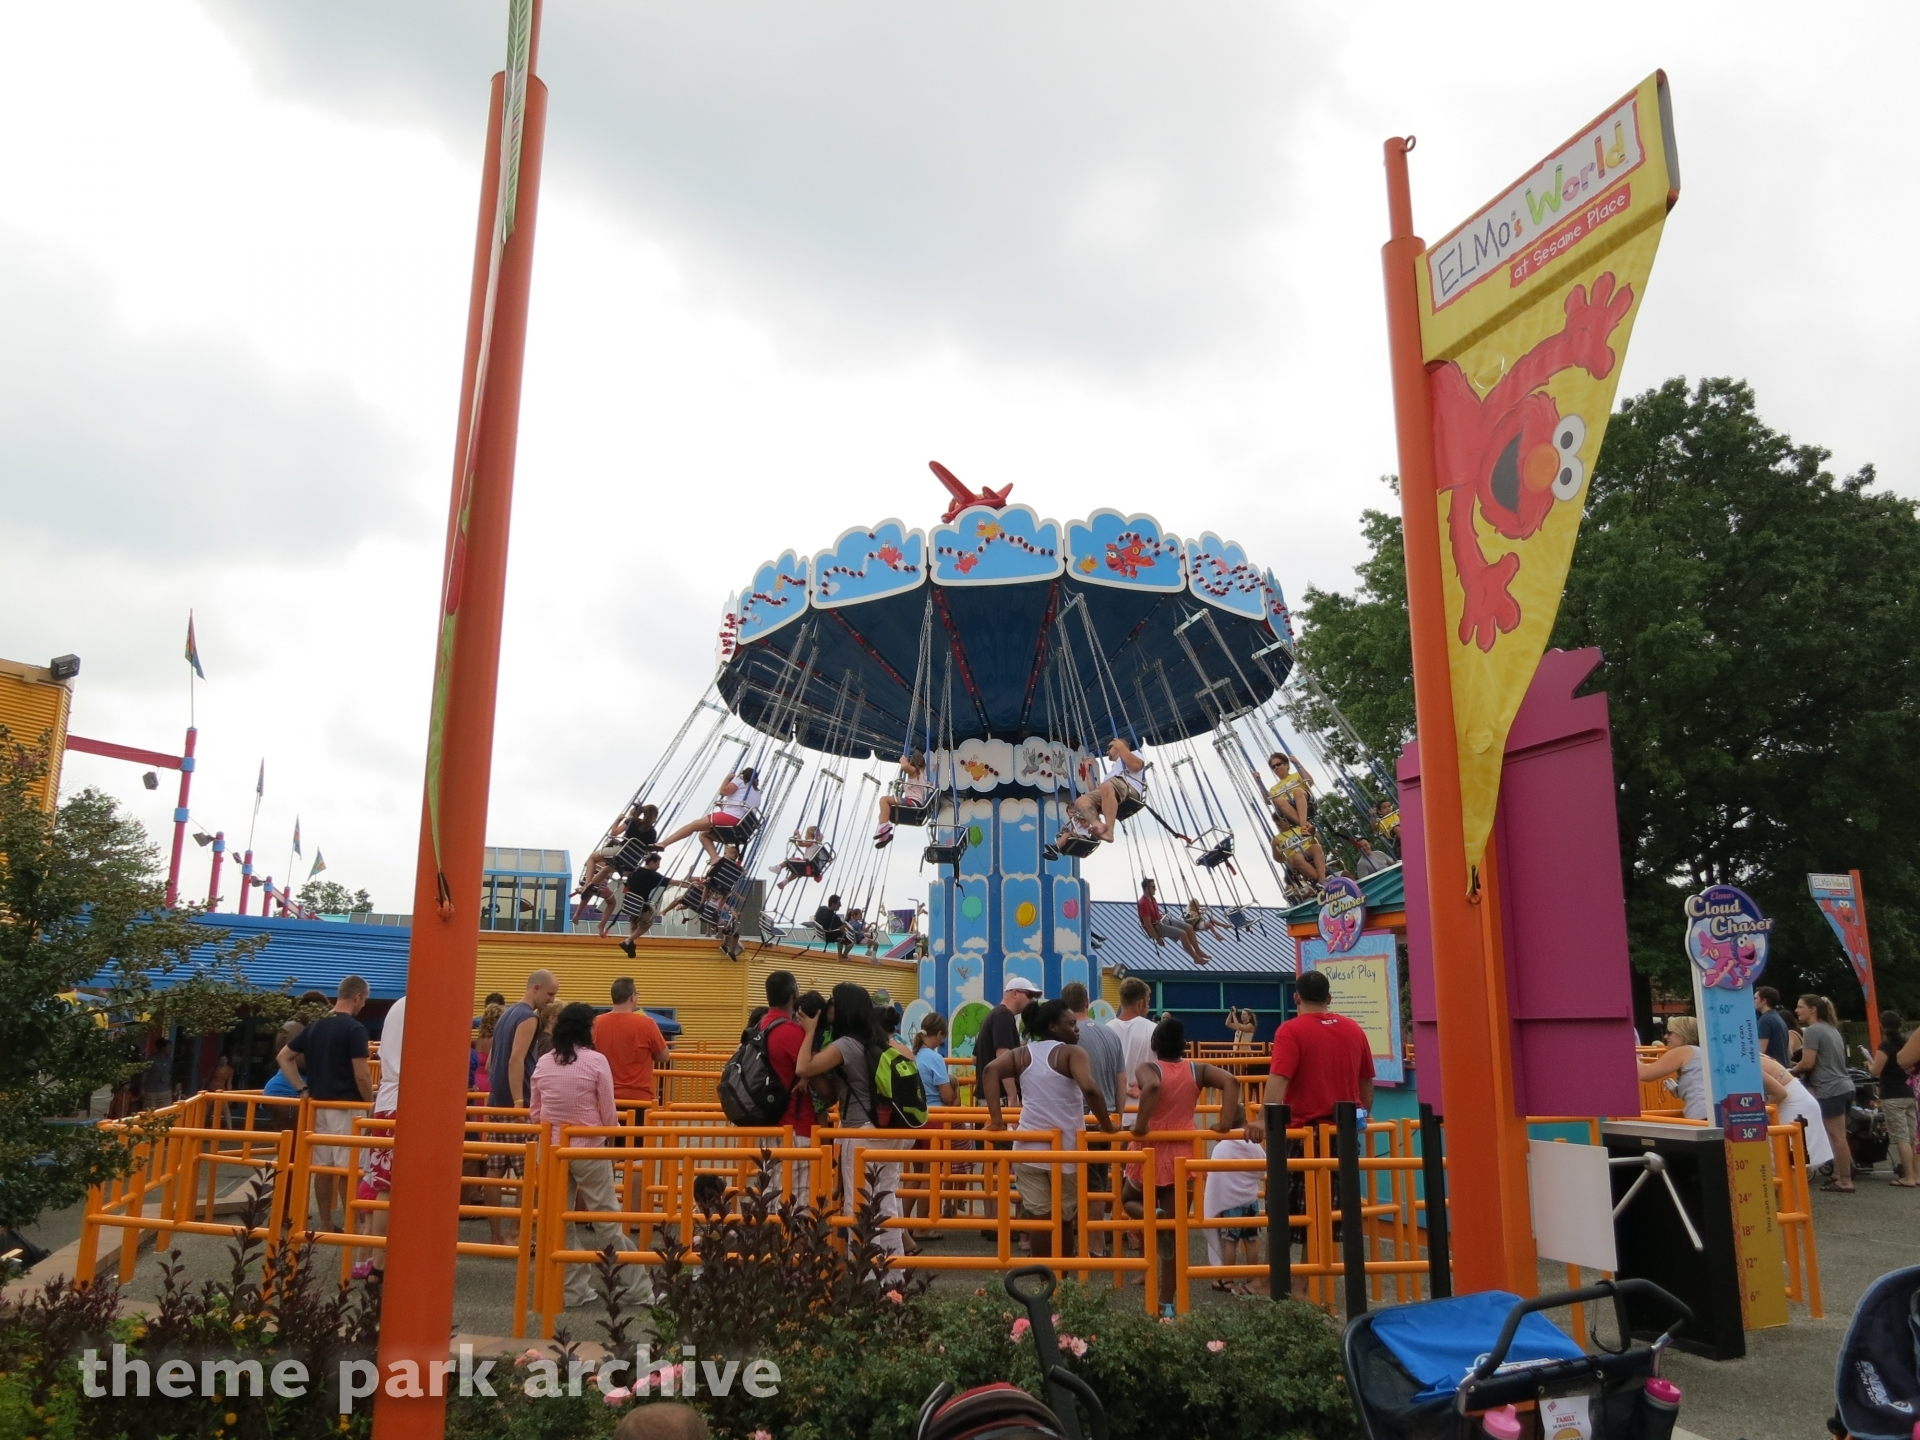 Elmo's Cloud Chaser at Sesame Place